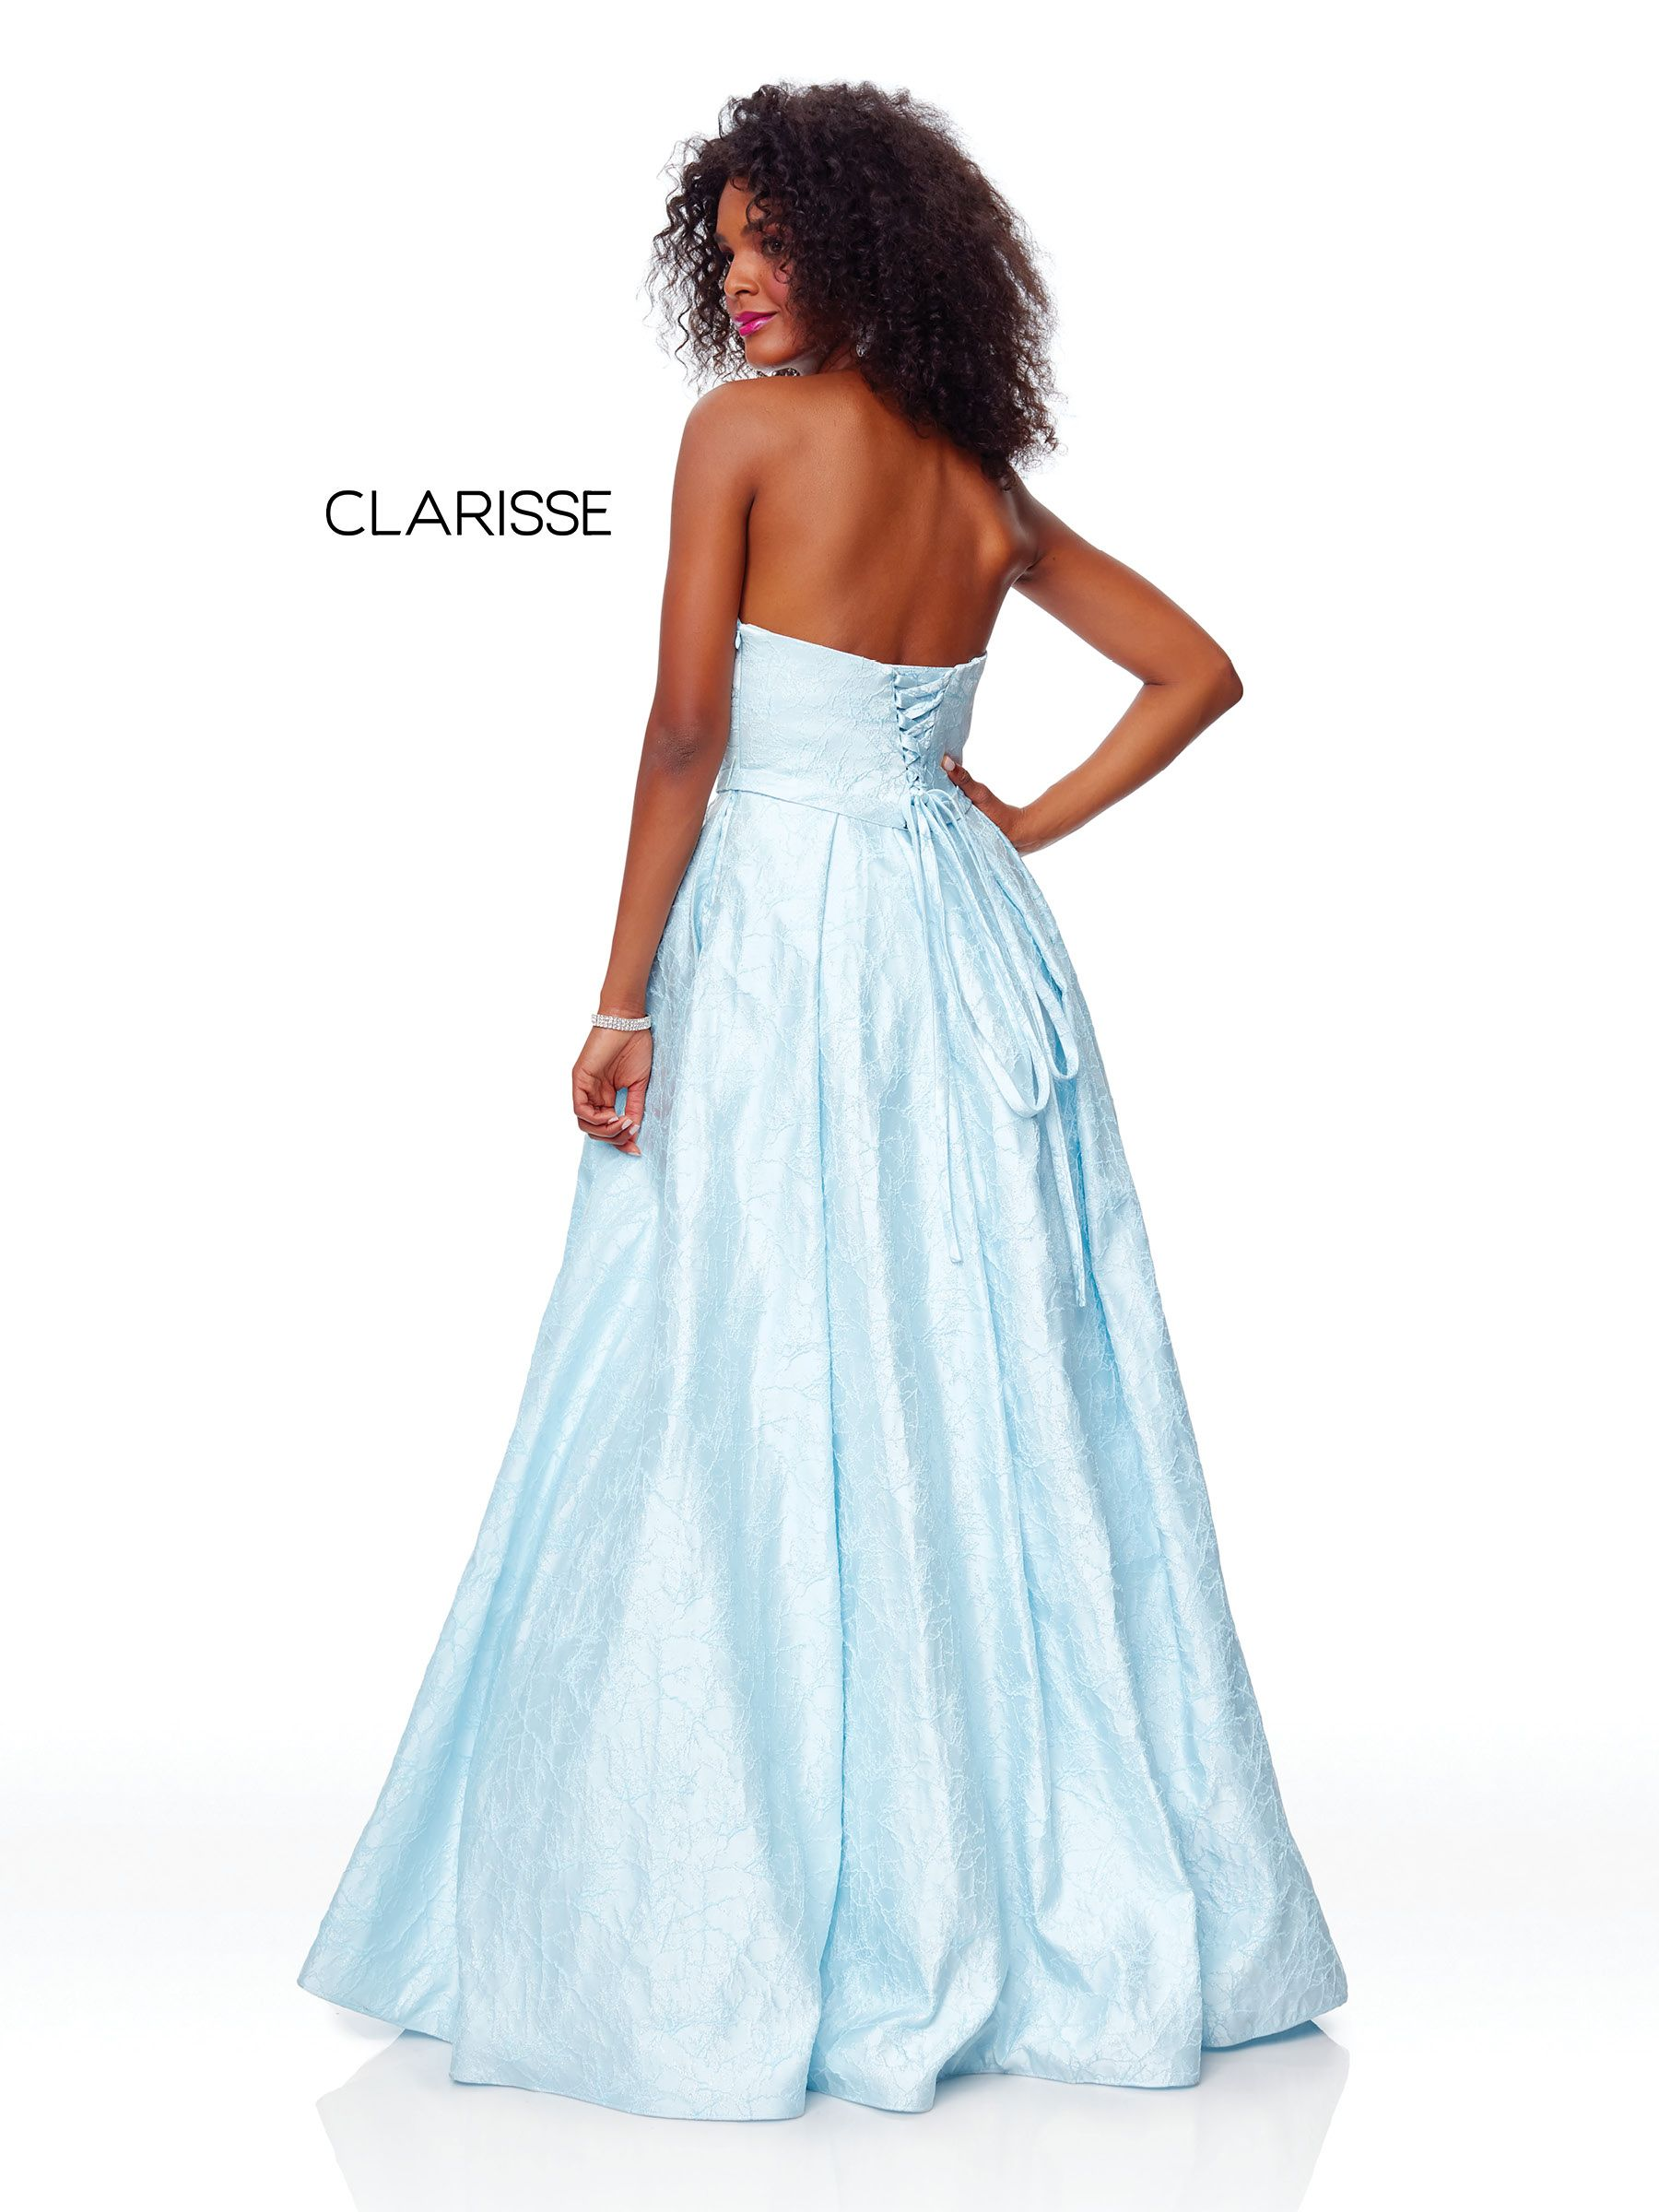 08acf083a3 3705 - Strapless baby blue ball gown with a corset back